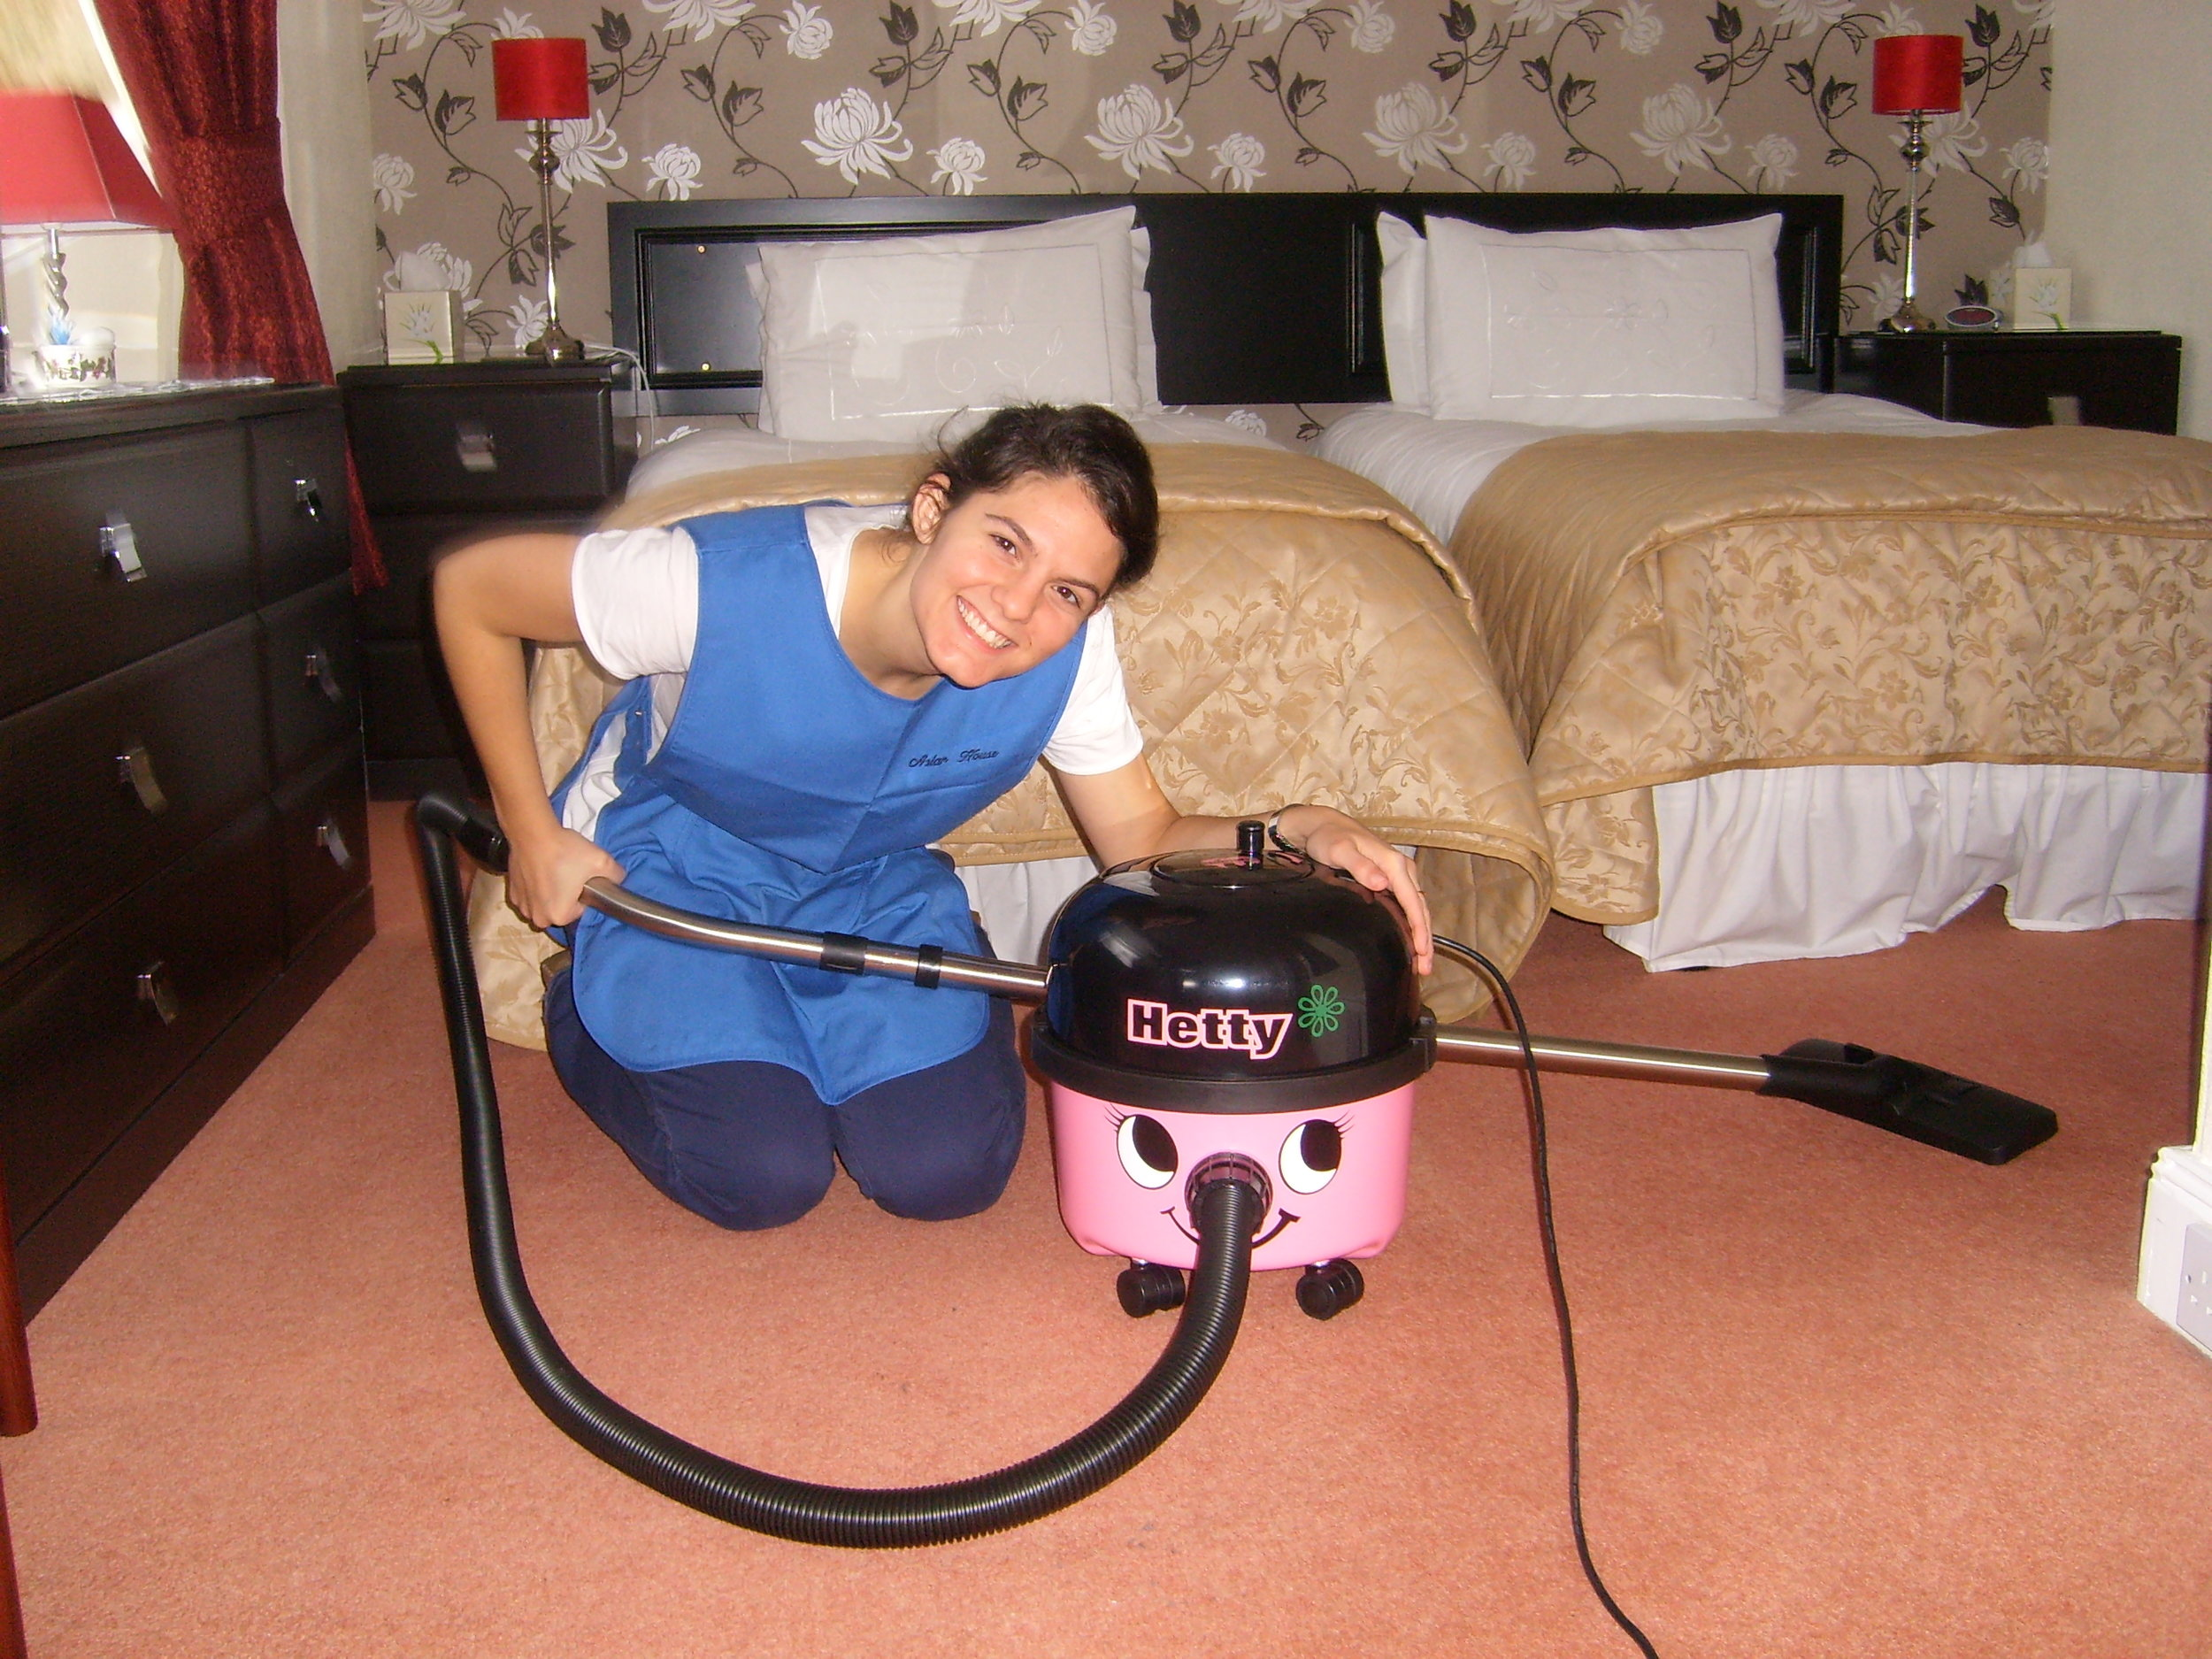 Here I am hoovering Room 4, also known as the Turret Room, with my favorite hoover Hetty. Leave it to Britain to personalize their vacuum cleaners.